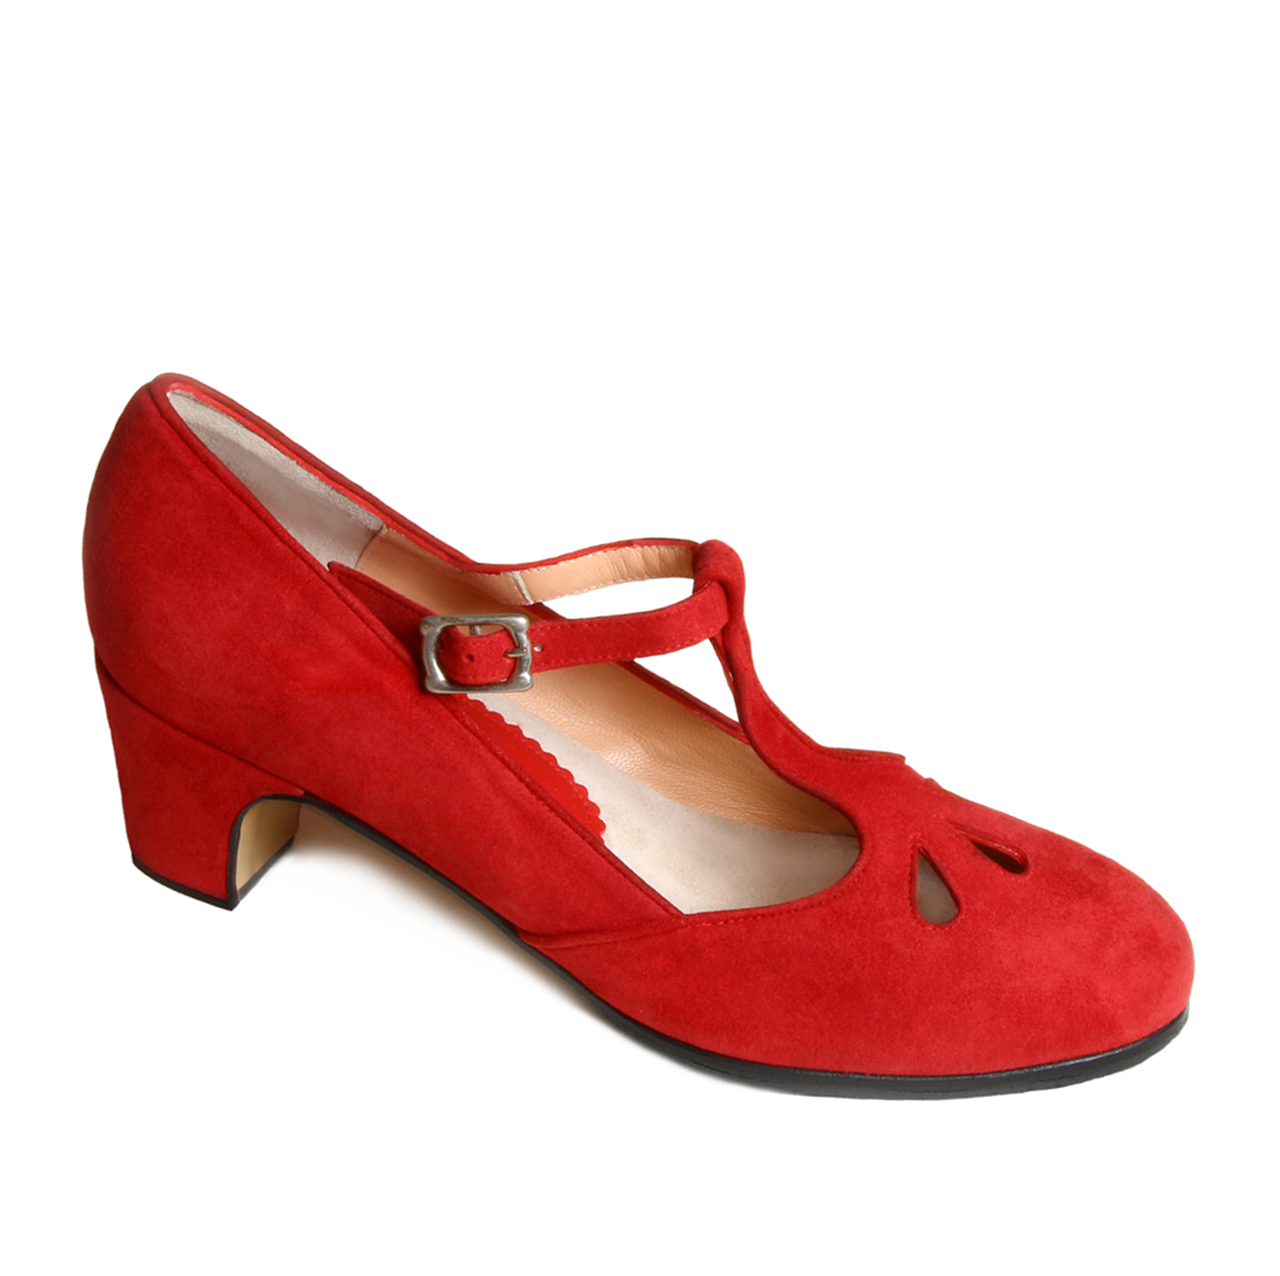 Flamenco shoe Trebol red suede